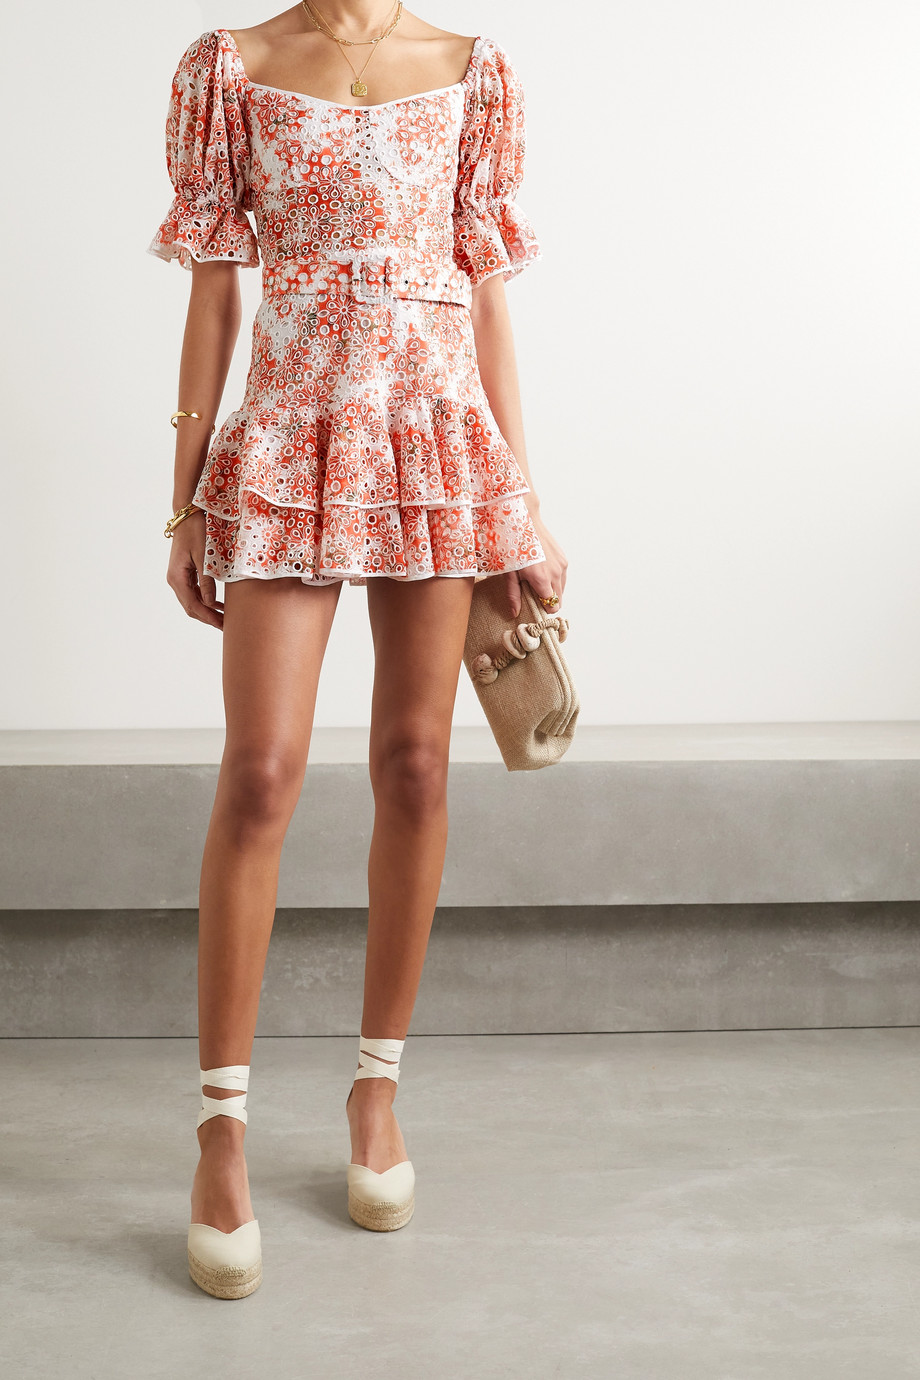 Charo Ruiz Jean off-the-shoulder belted printed broderie anglaise cotton-blend mini dress